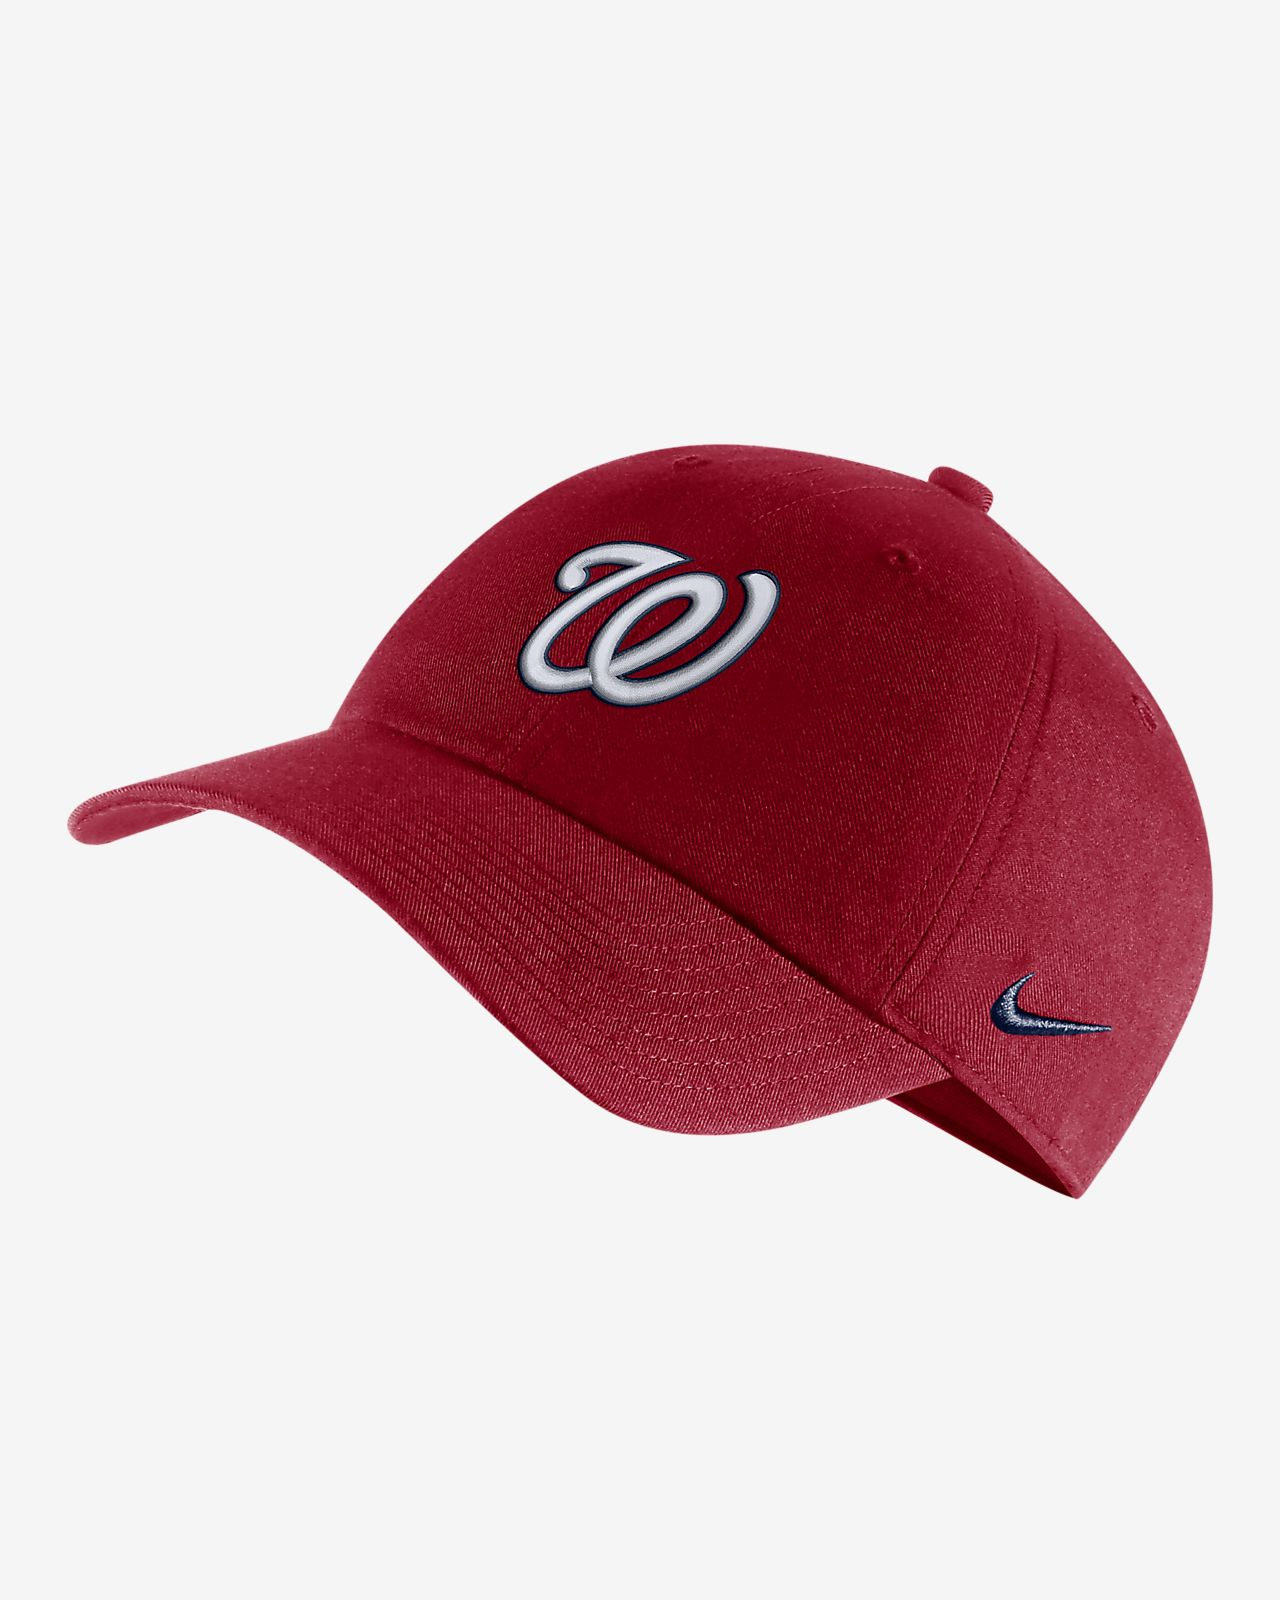 4c3bff9771e Nike Heritage86 (MLB Nationals) Hat. Nike.com